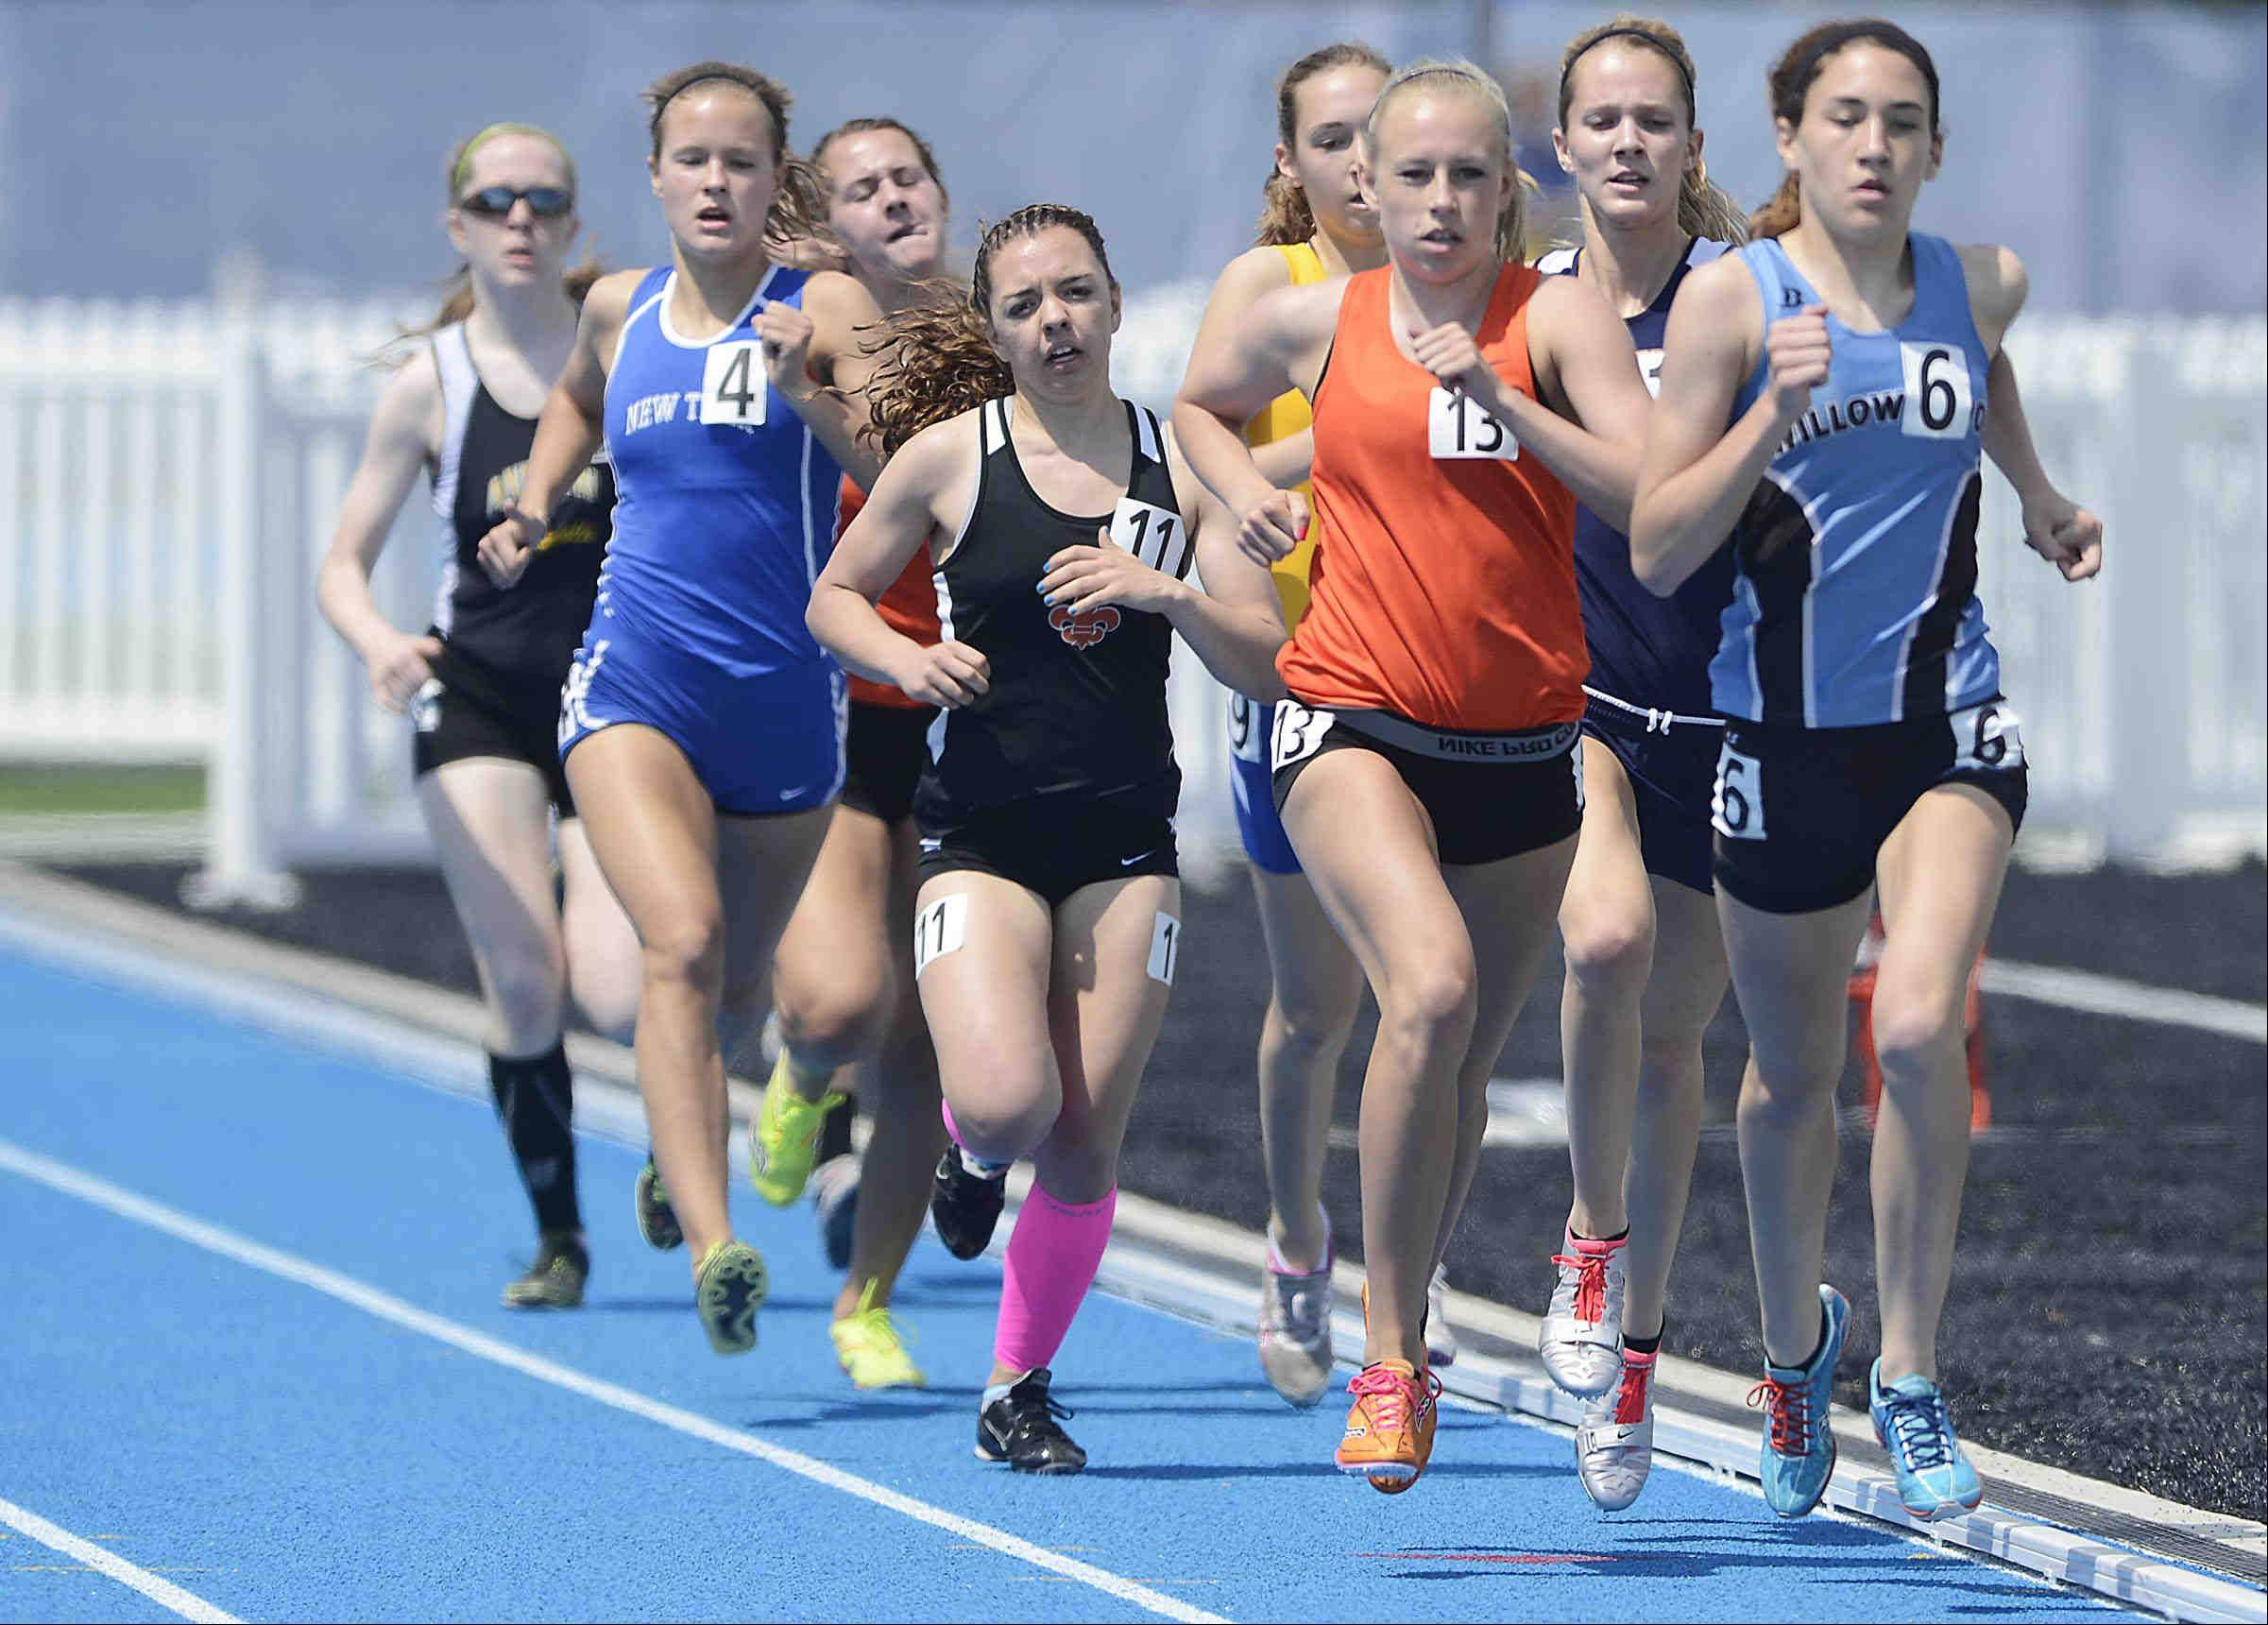 Willowbrook's Molly Krawczykowski, right, Wheaton Warrenville South's McKenna Kiple, middle, and St. Charles East's Corrin Adams, left, control the lane in their heat of the 800 meter run Friday at the Class 3A girls state track and field preliminaries at O'Brien Stadium at Eastern Illinois University in Charleston.